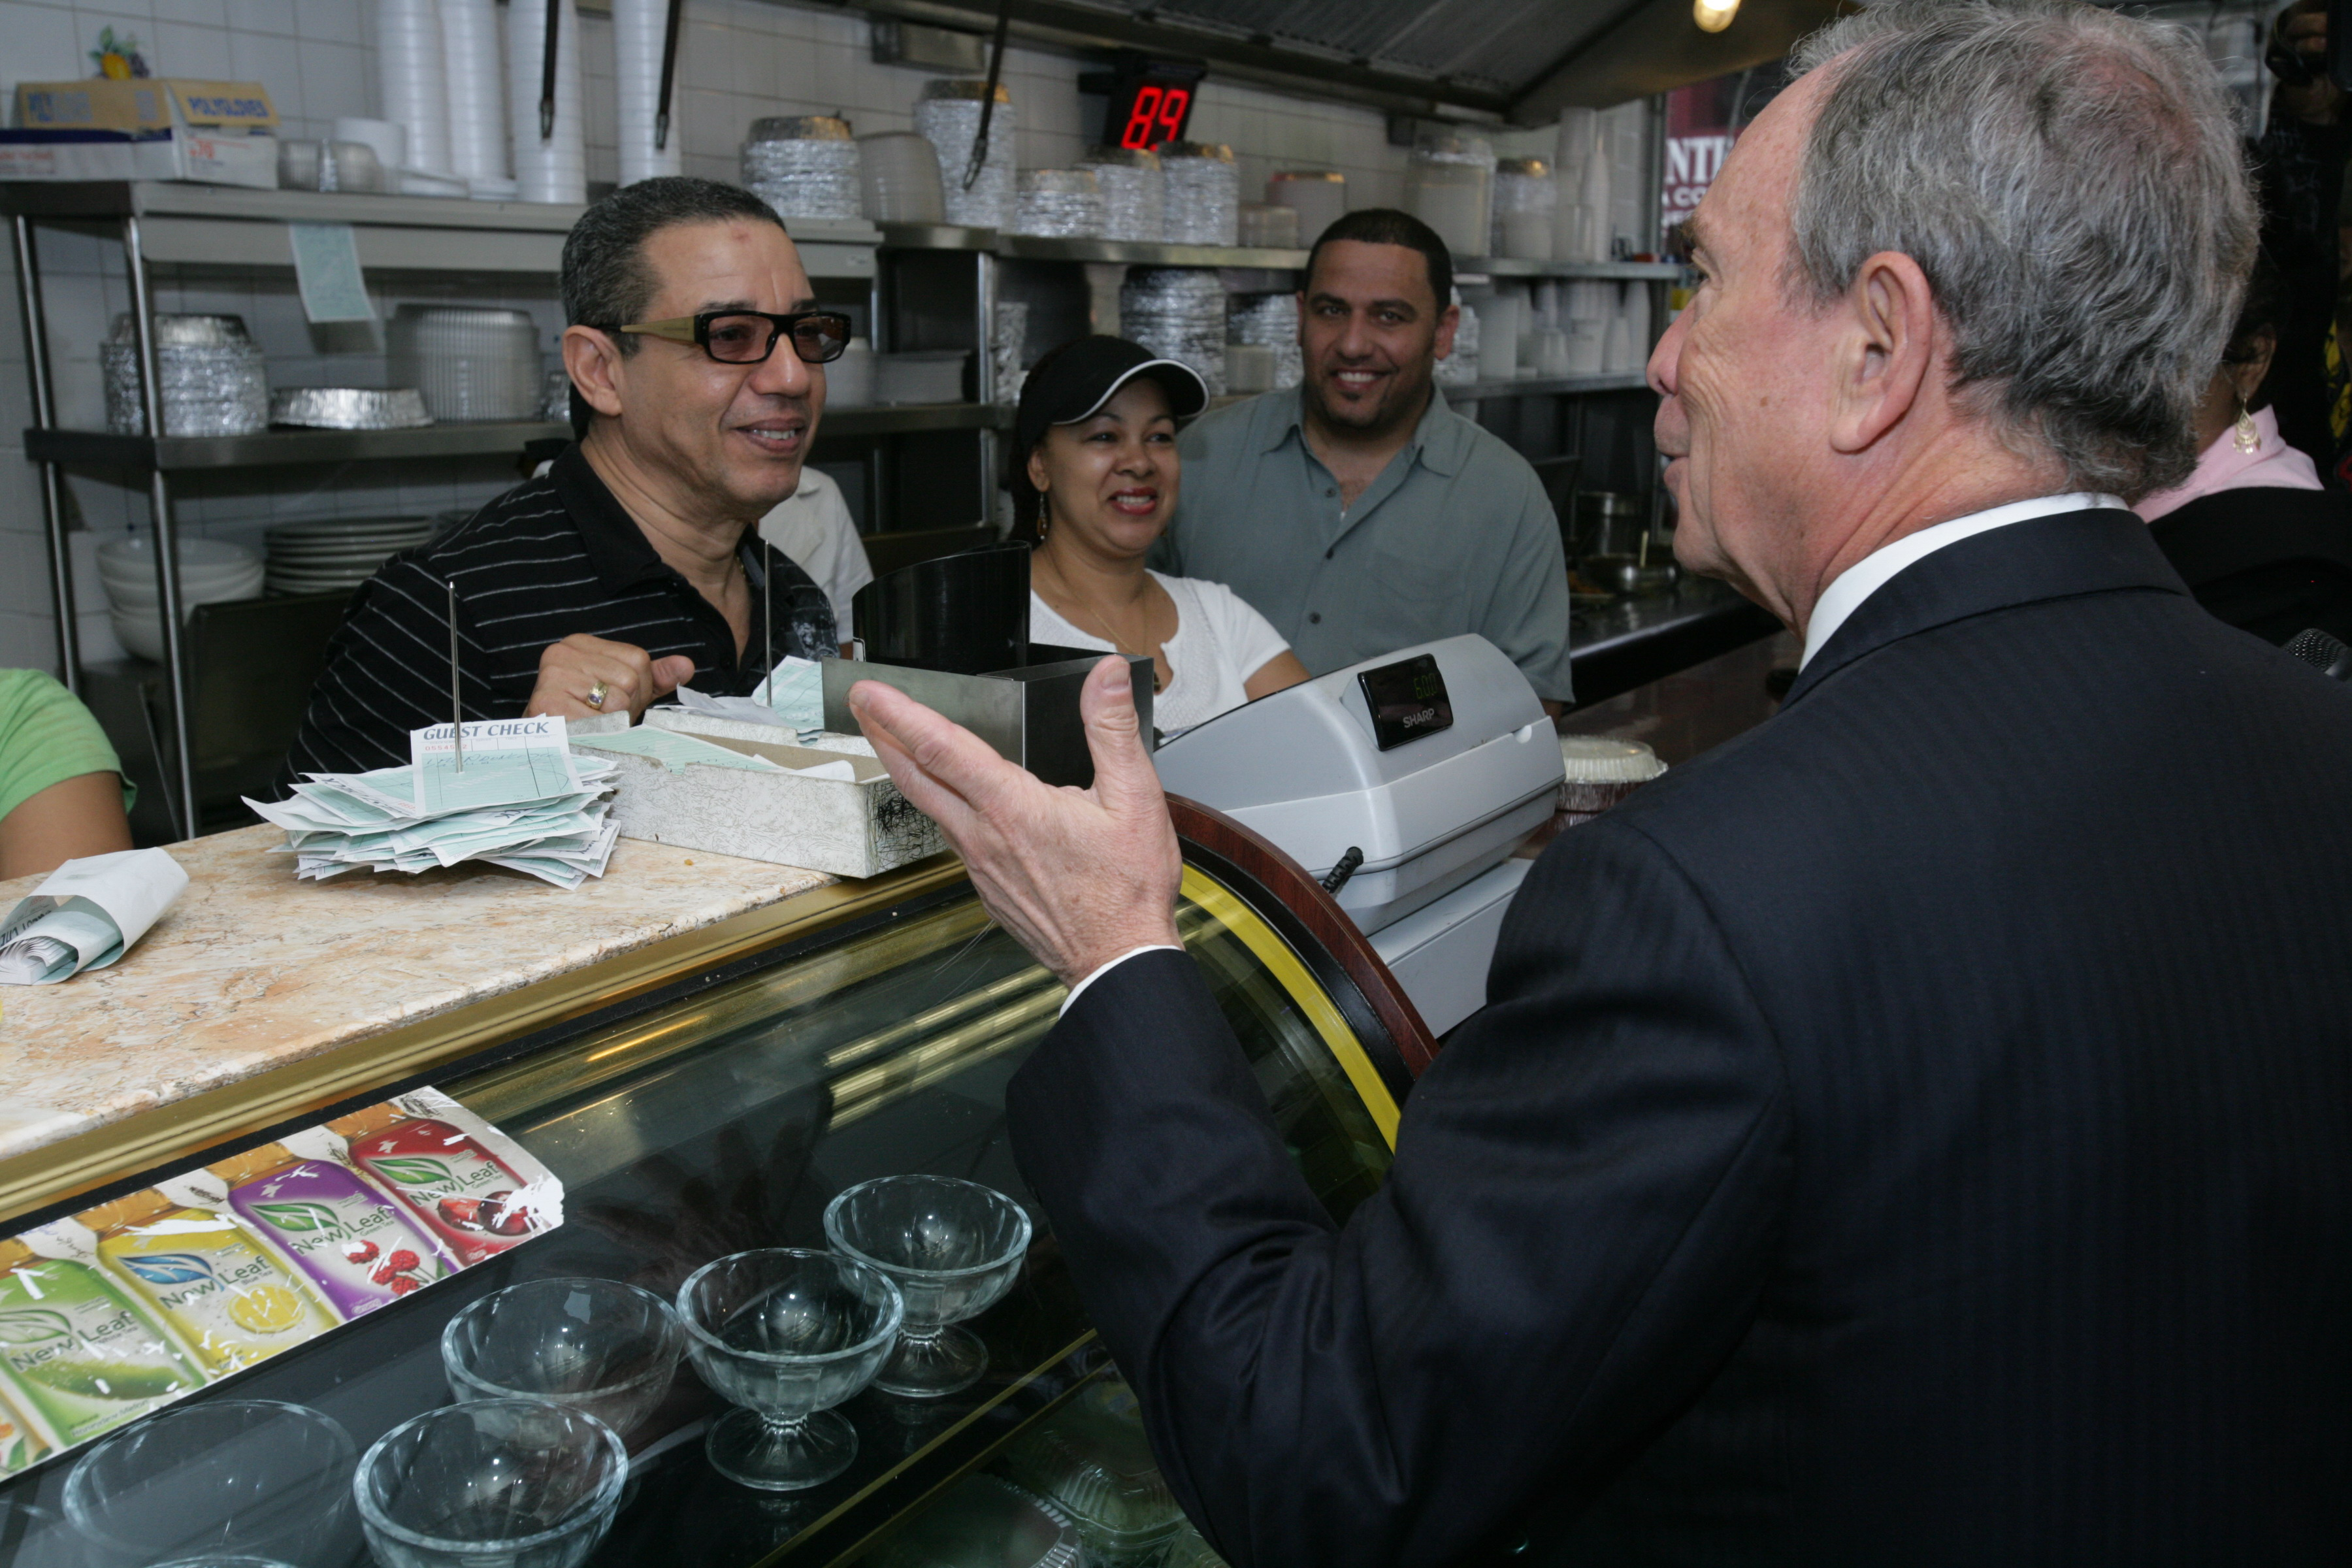 Mike speaks with employees at a local business in Washington Heights in New York City